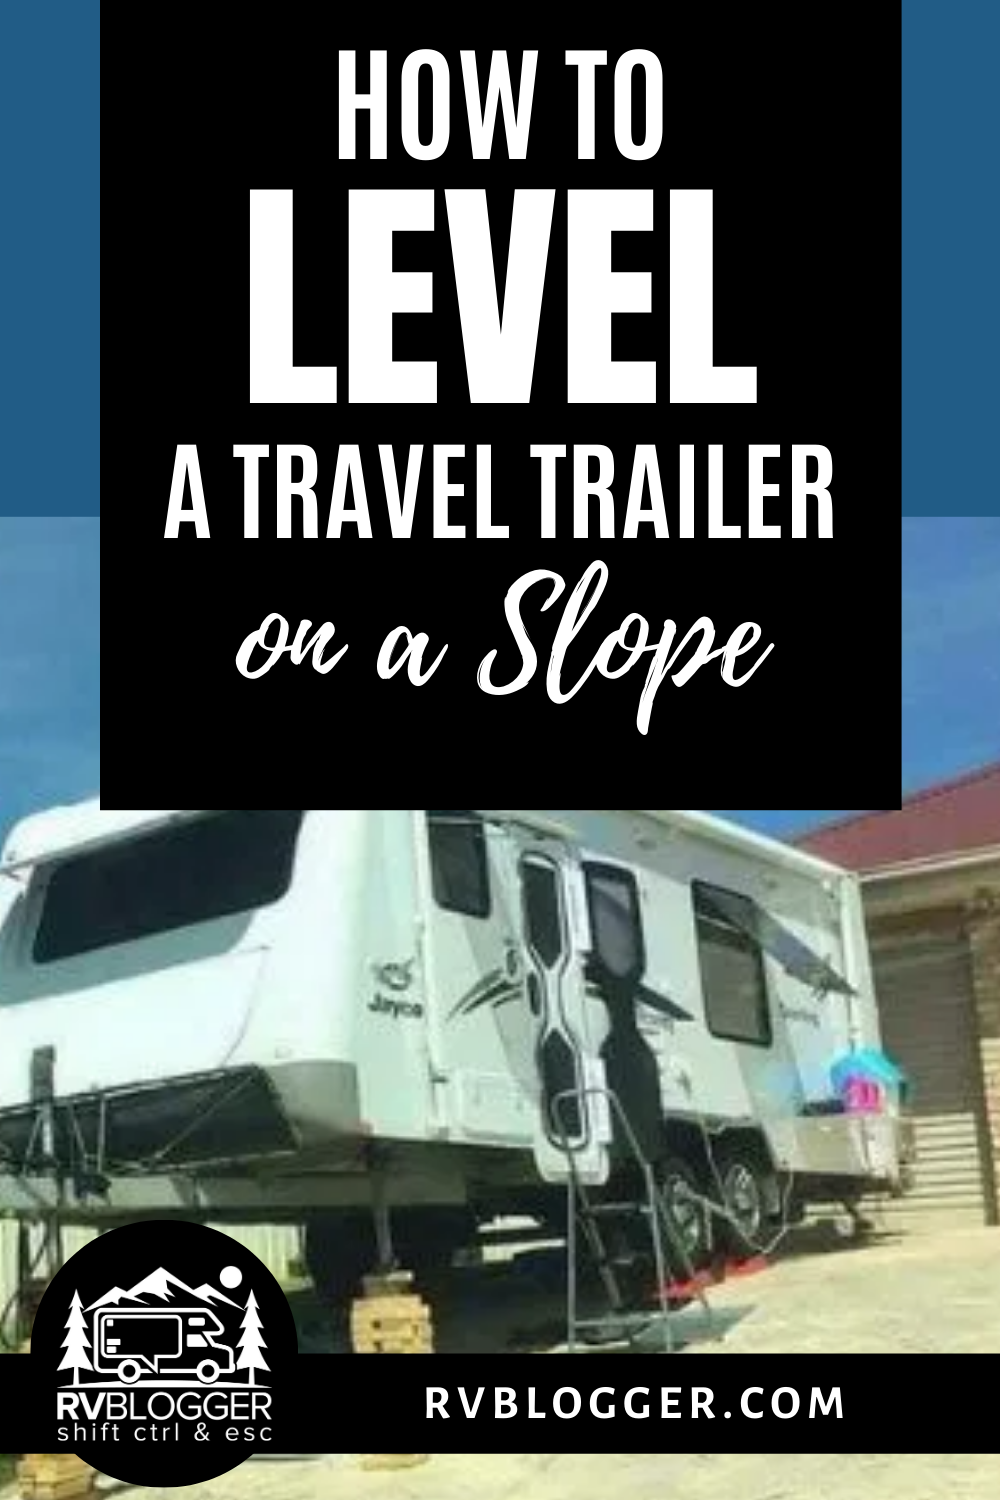 How To Level A Travel Trailer On A Slope Rvblogger Travel Trailer Trailer Travel